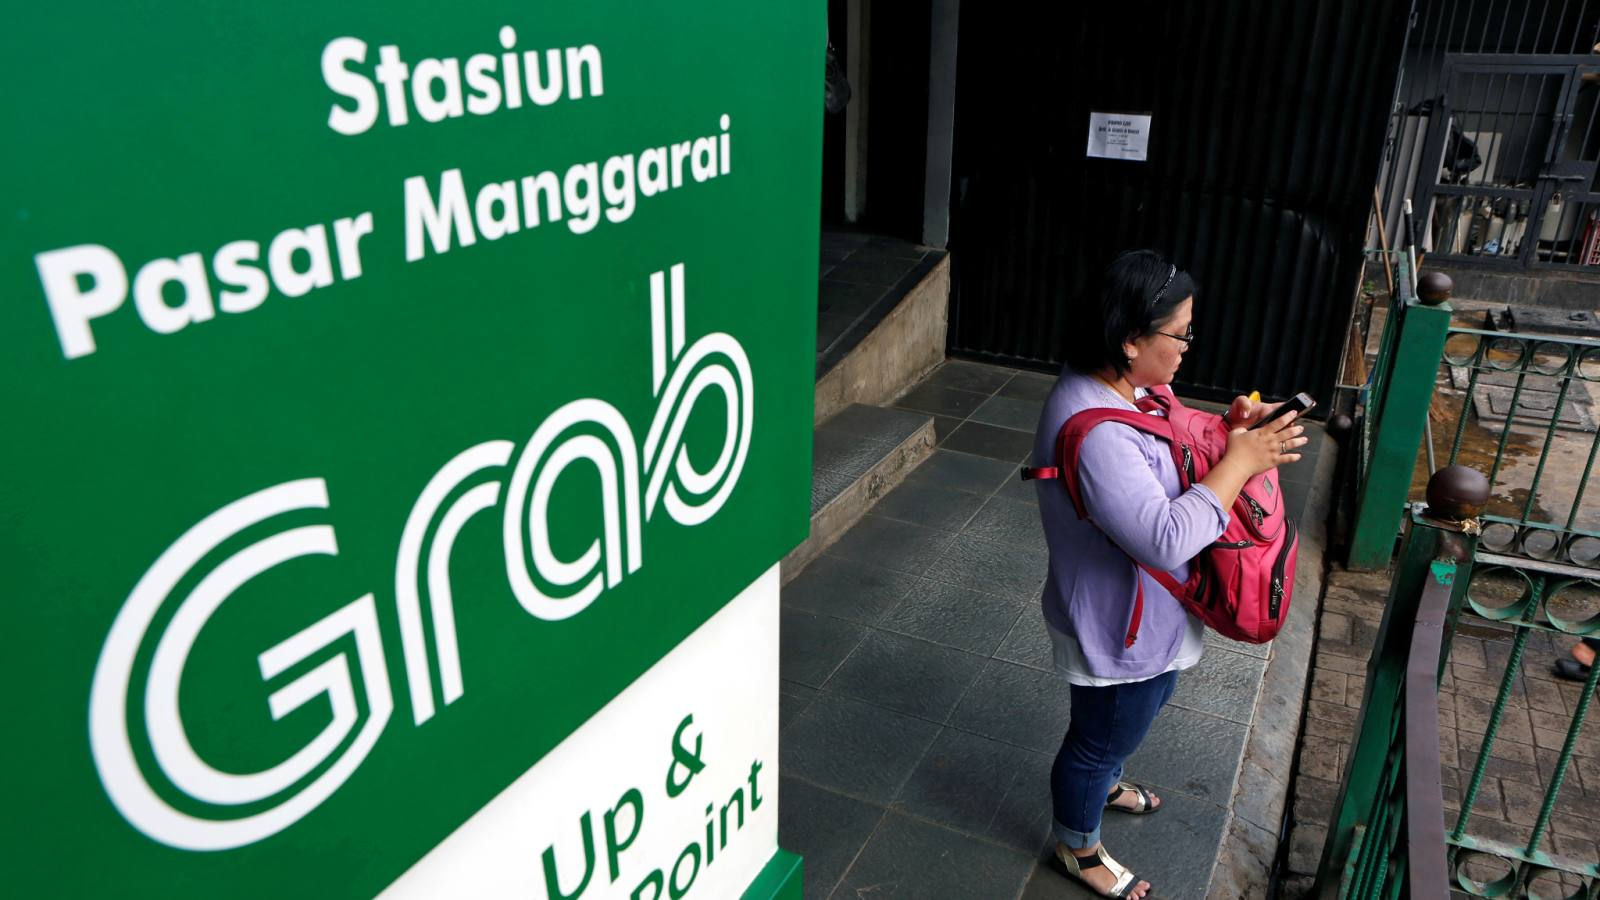 The pickup and drop-off point for the online ride-hailing service Grab at the Manggarai train station in Jakarta.